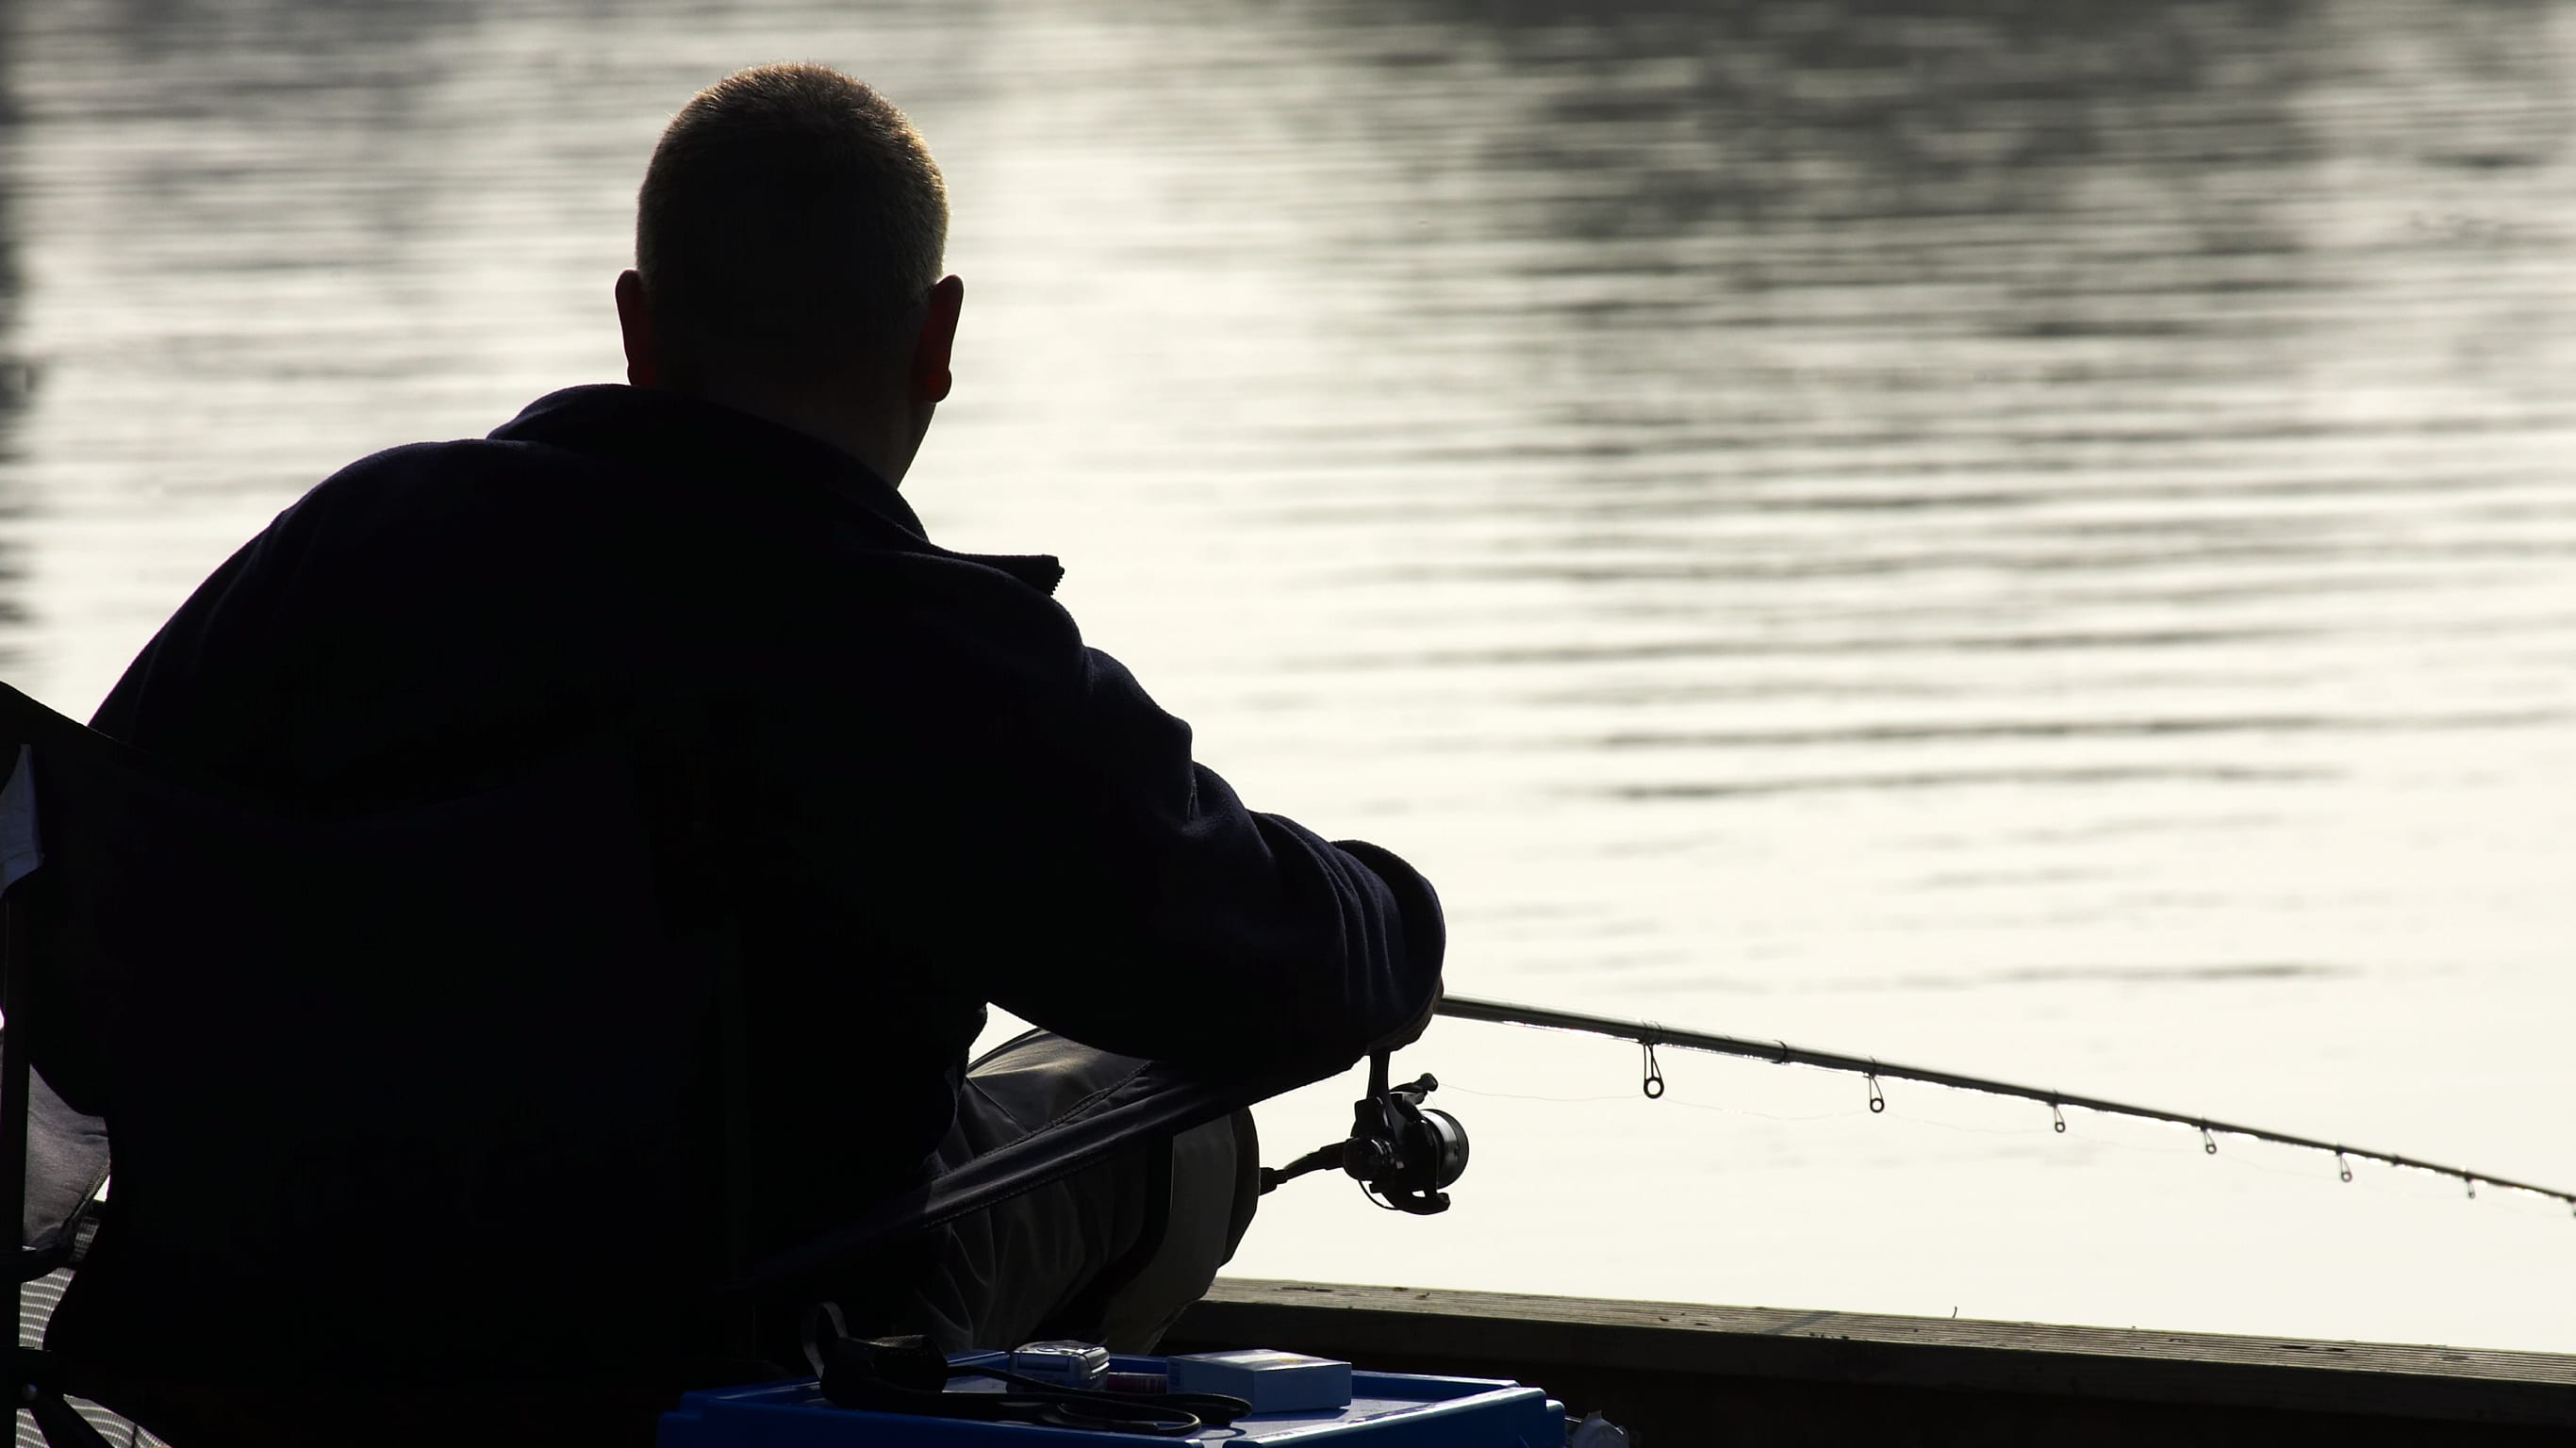 Fishing at Coombe Abbey, Coventry